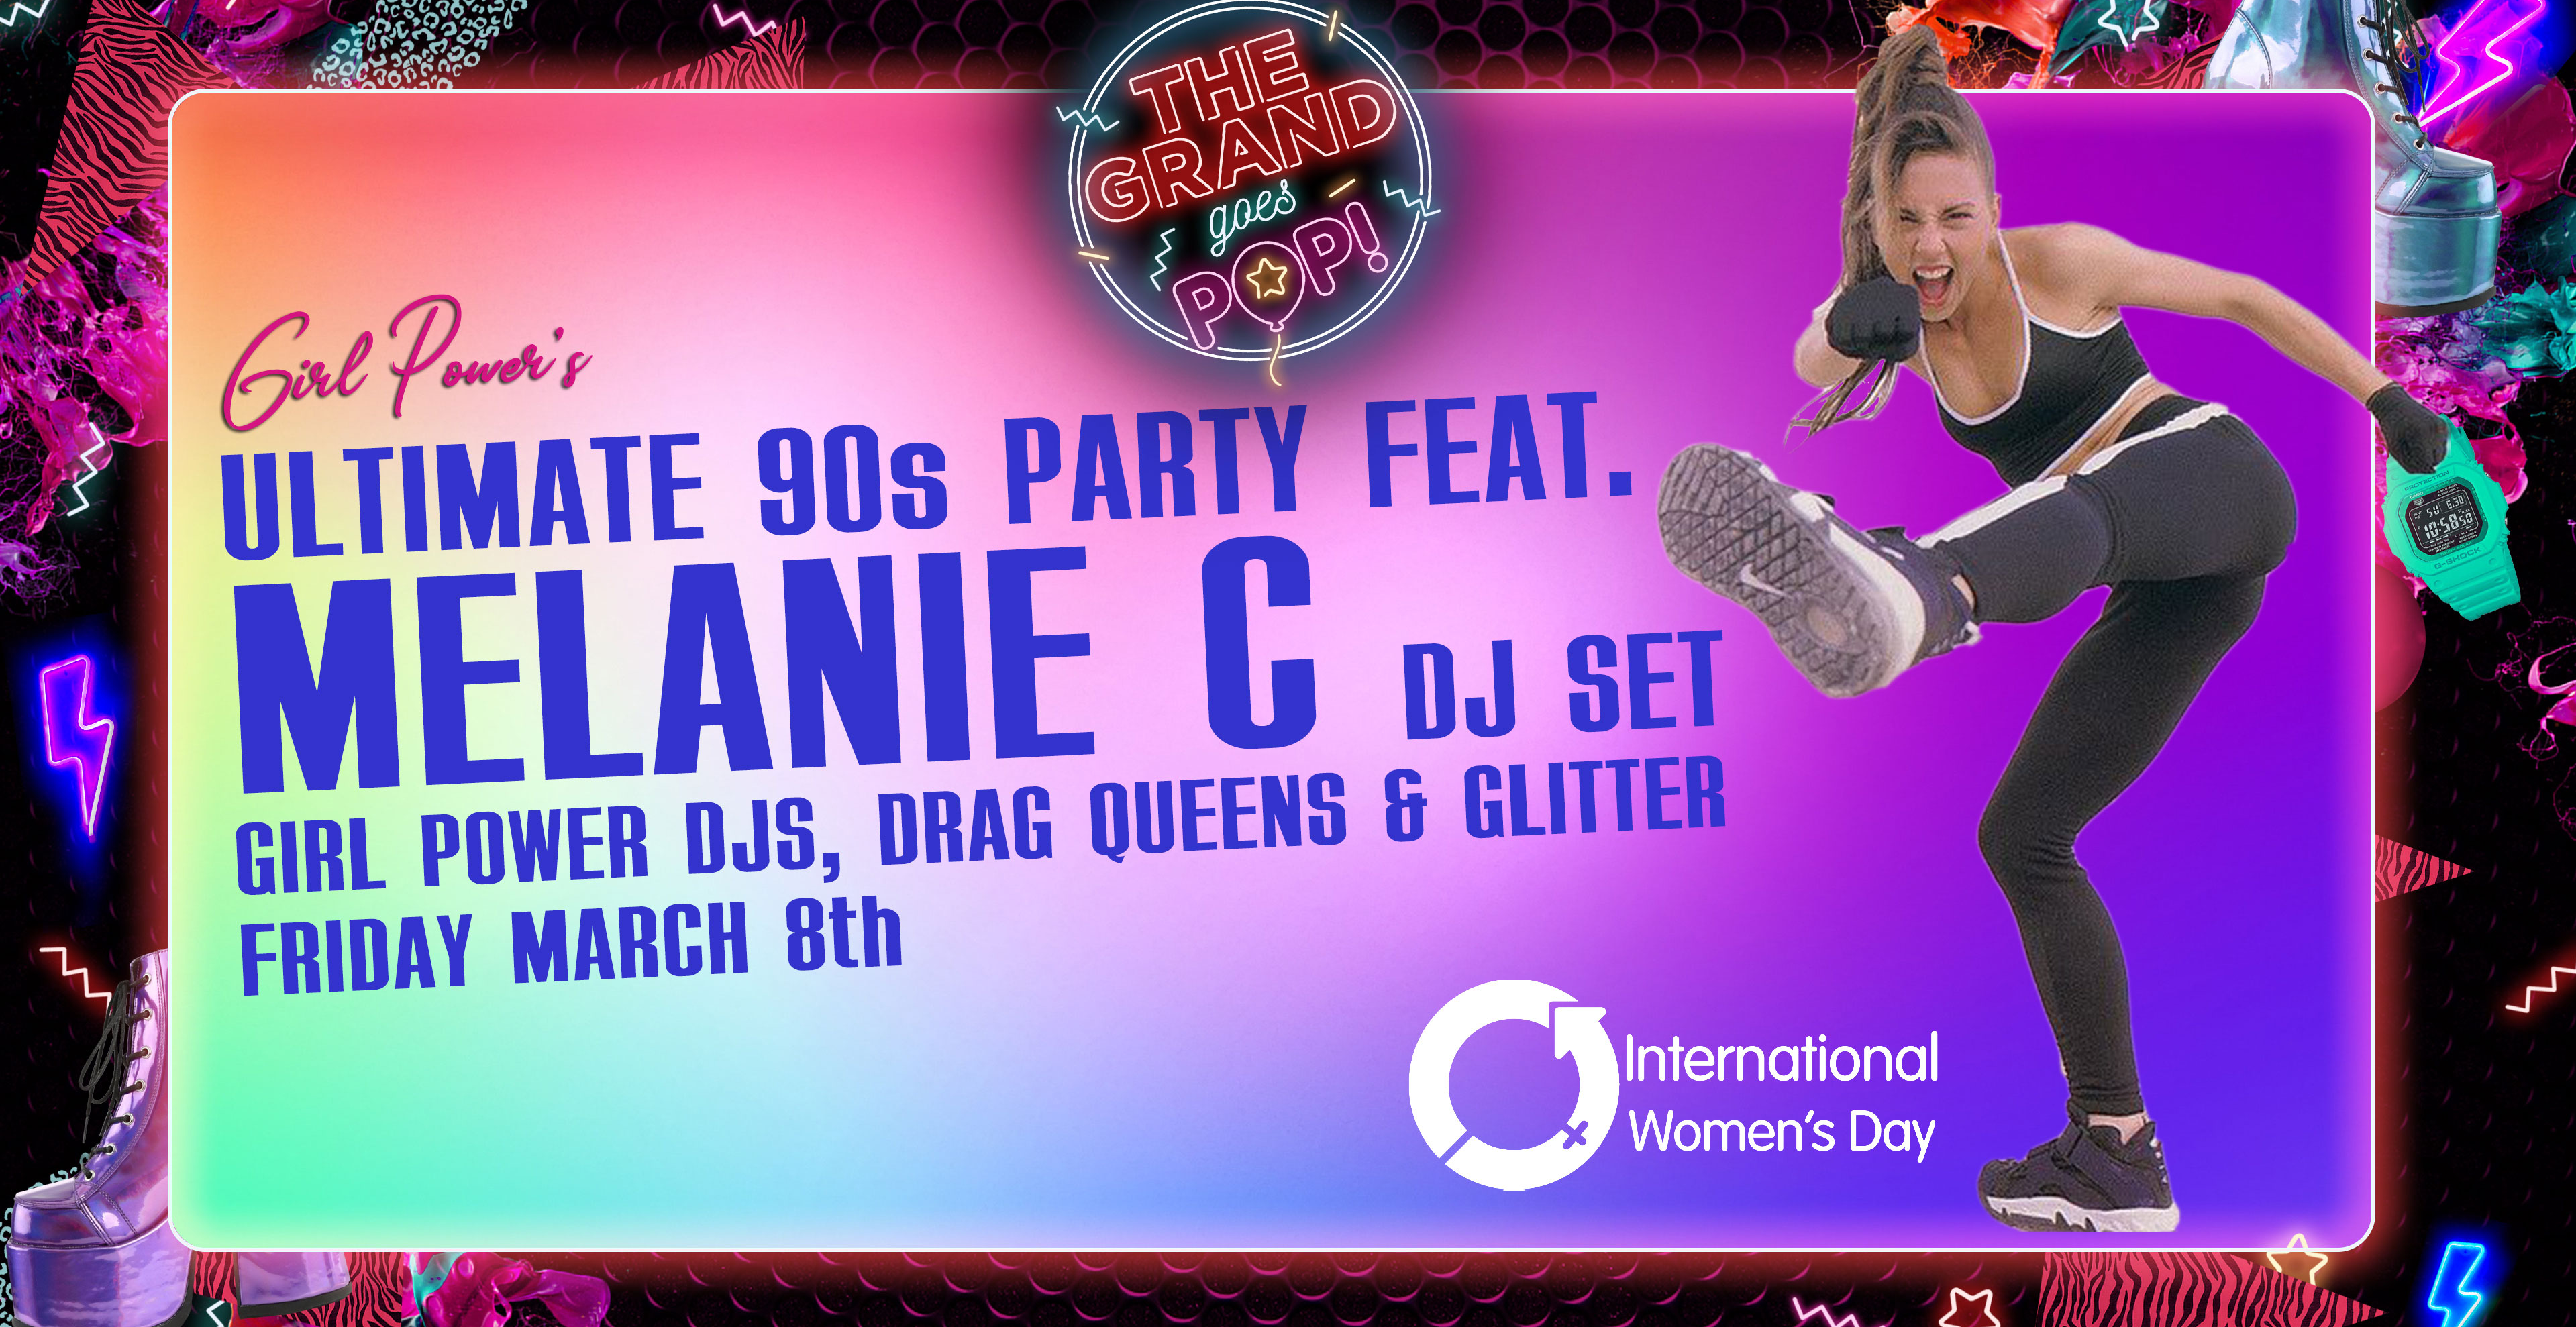 Melanie C DJ Set: An Ultimate 90s Party